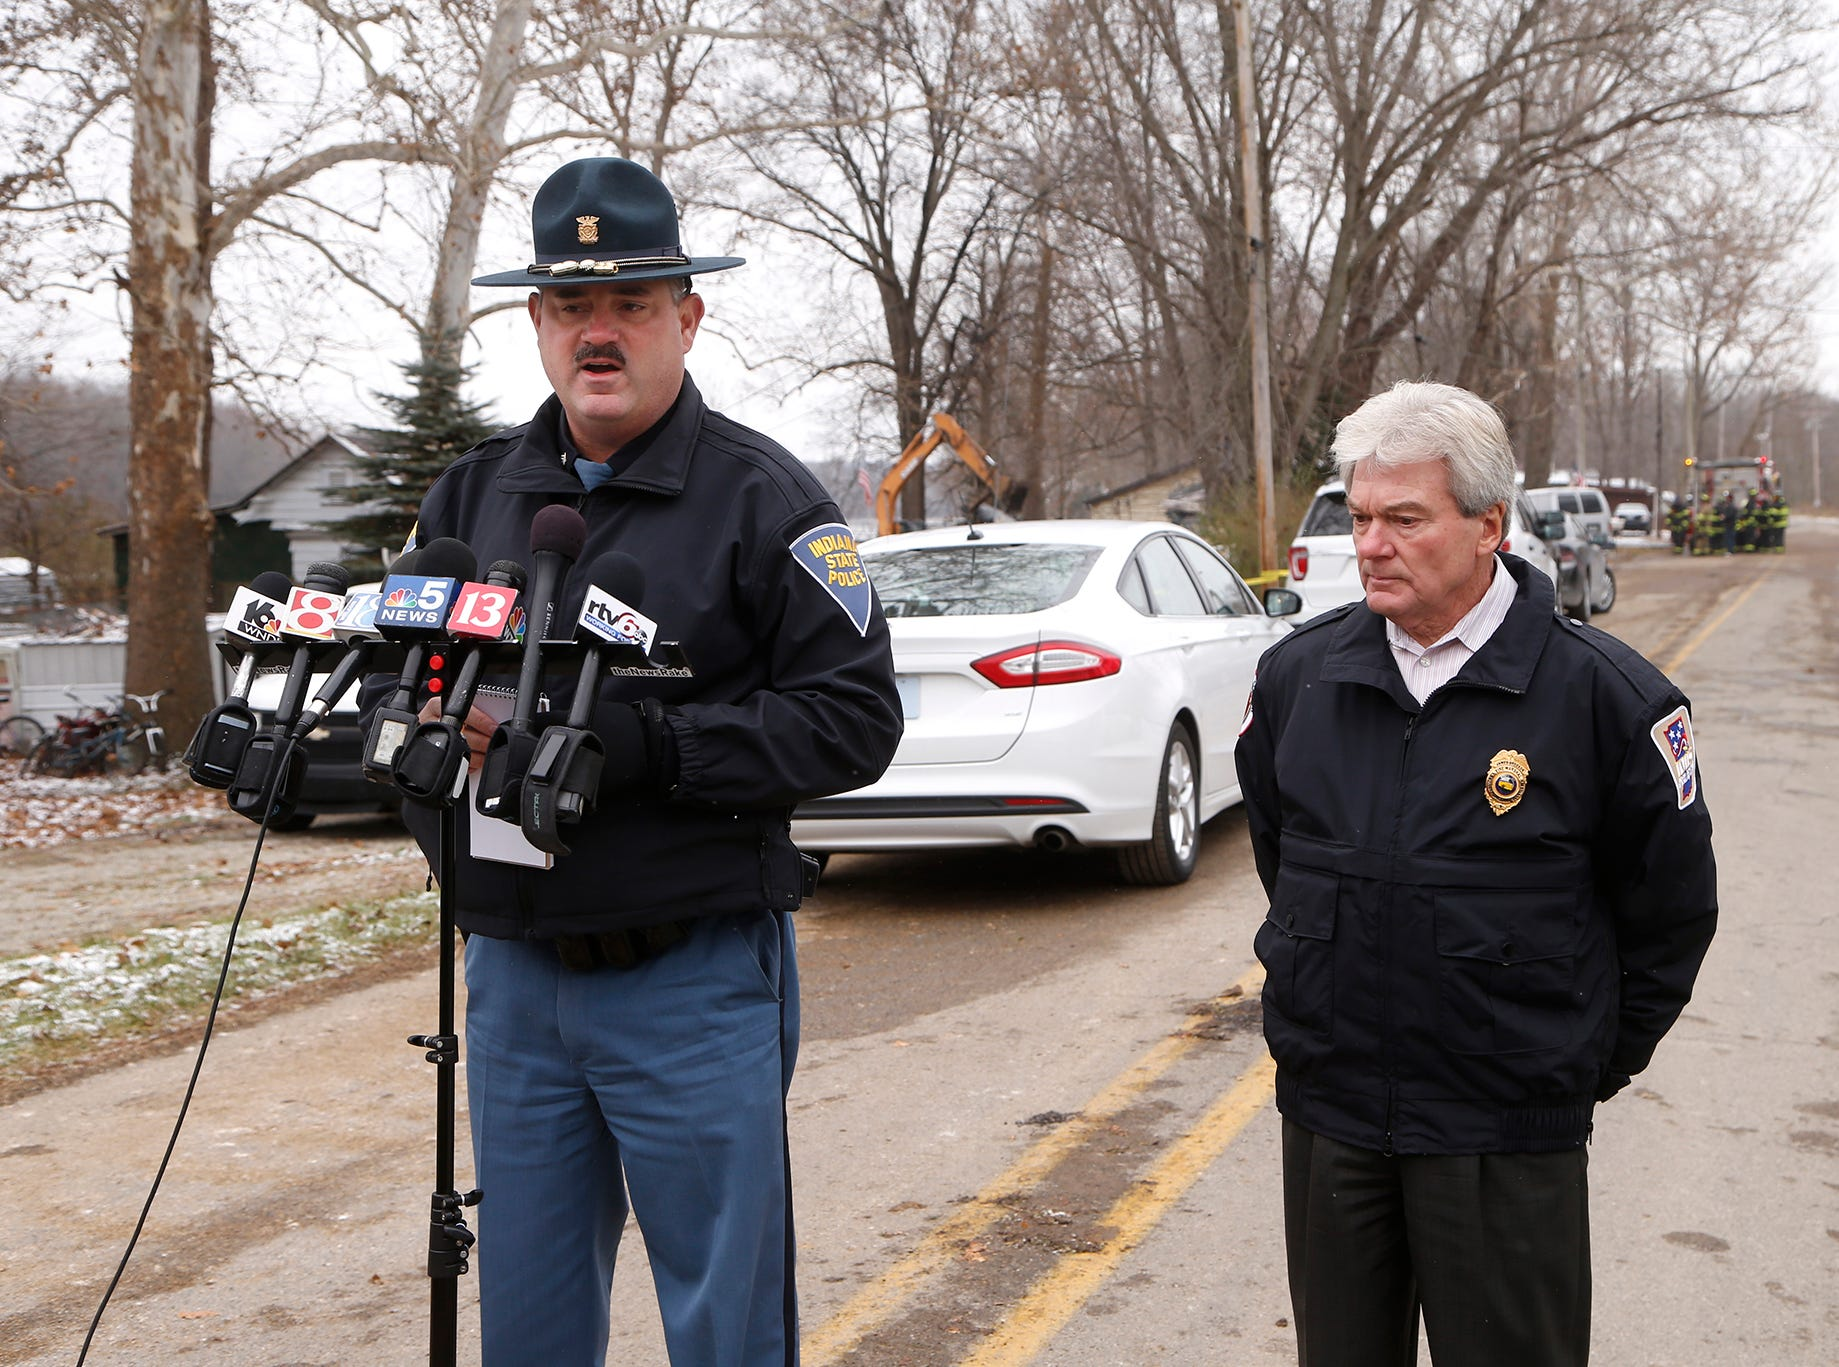 Indiana State Police Sgt. Tony Slocum, left, and Indiana State Fire Marshall Jim Greeson address members of the media following an early morning fatal house fire Wednesday, November 28, 2018, at 4317 Pottawatomie Road in Logansport. Sgt. Slocum confirmed that two people got out of the house and were taken to Logansport Memorial Hospital. One body has been recovered from the house. Firefighters are still searching the home to see if there are additional fatalities. Sgt. Slocum said that until otherwise, the fire is being treated as a criminal investigation.